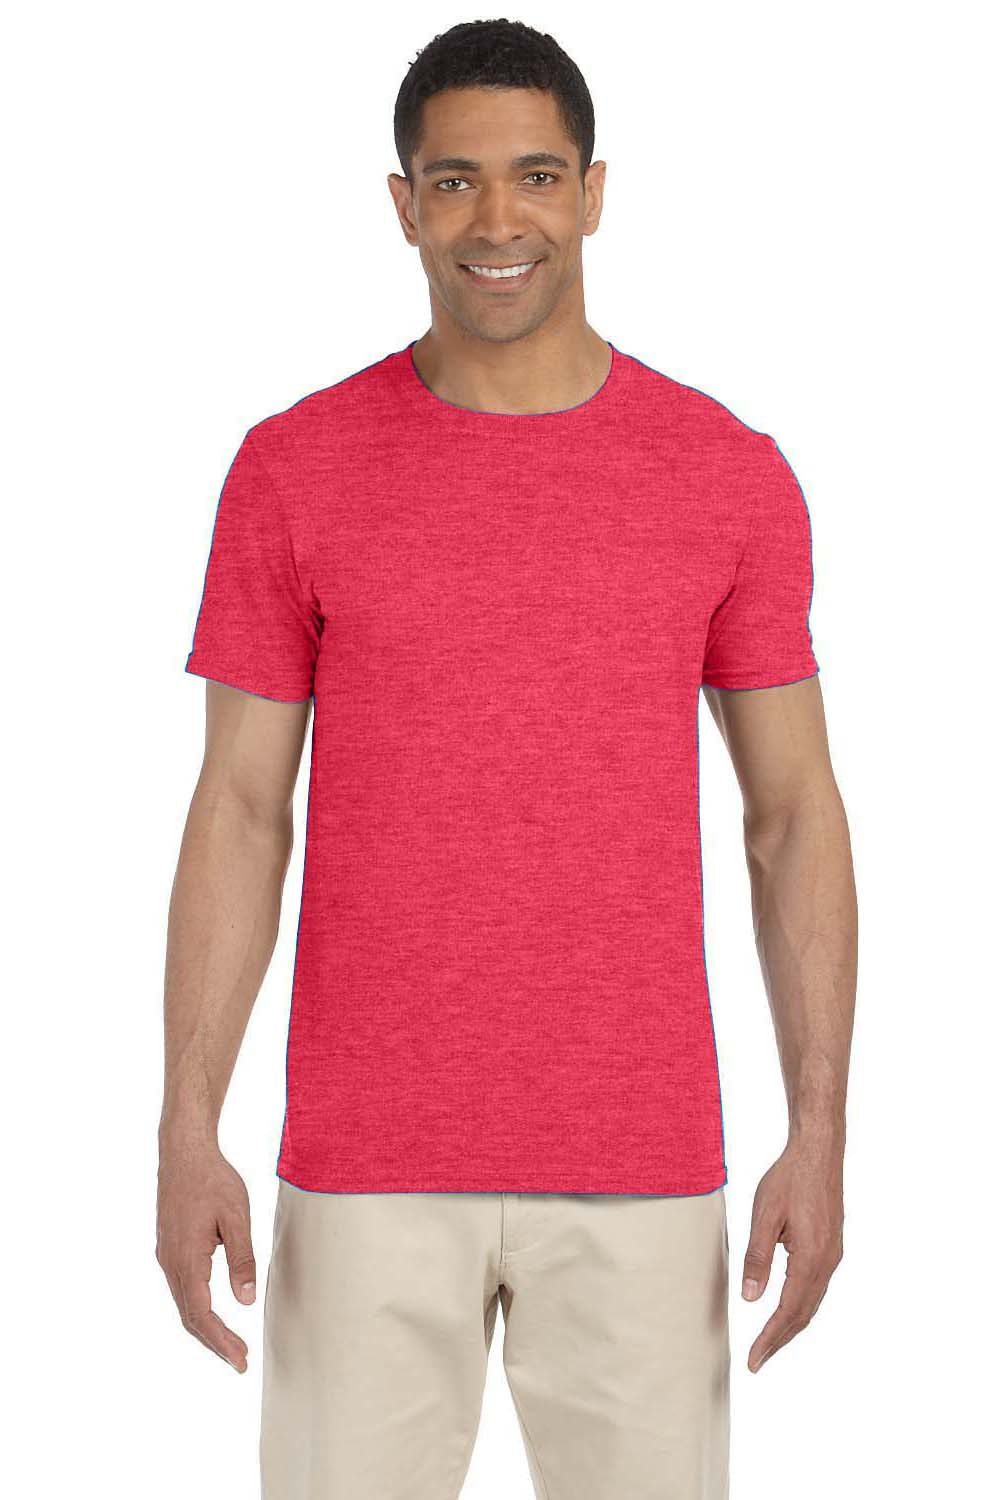 Gildan G640 Mens Softstyle Short Sleeve Crewneck T-Shirt Heather Red Front